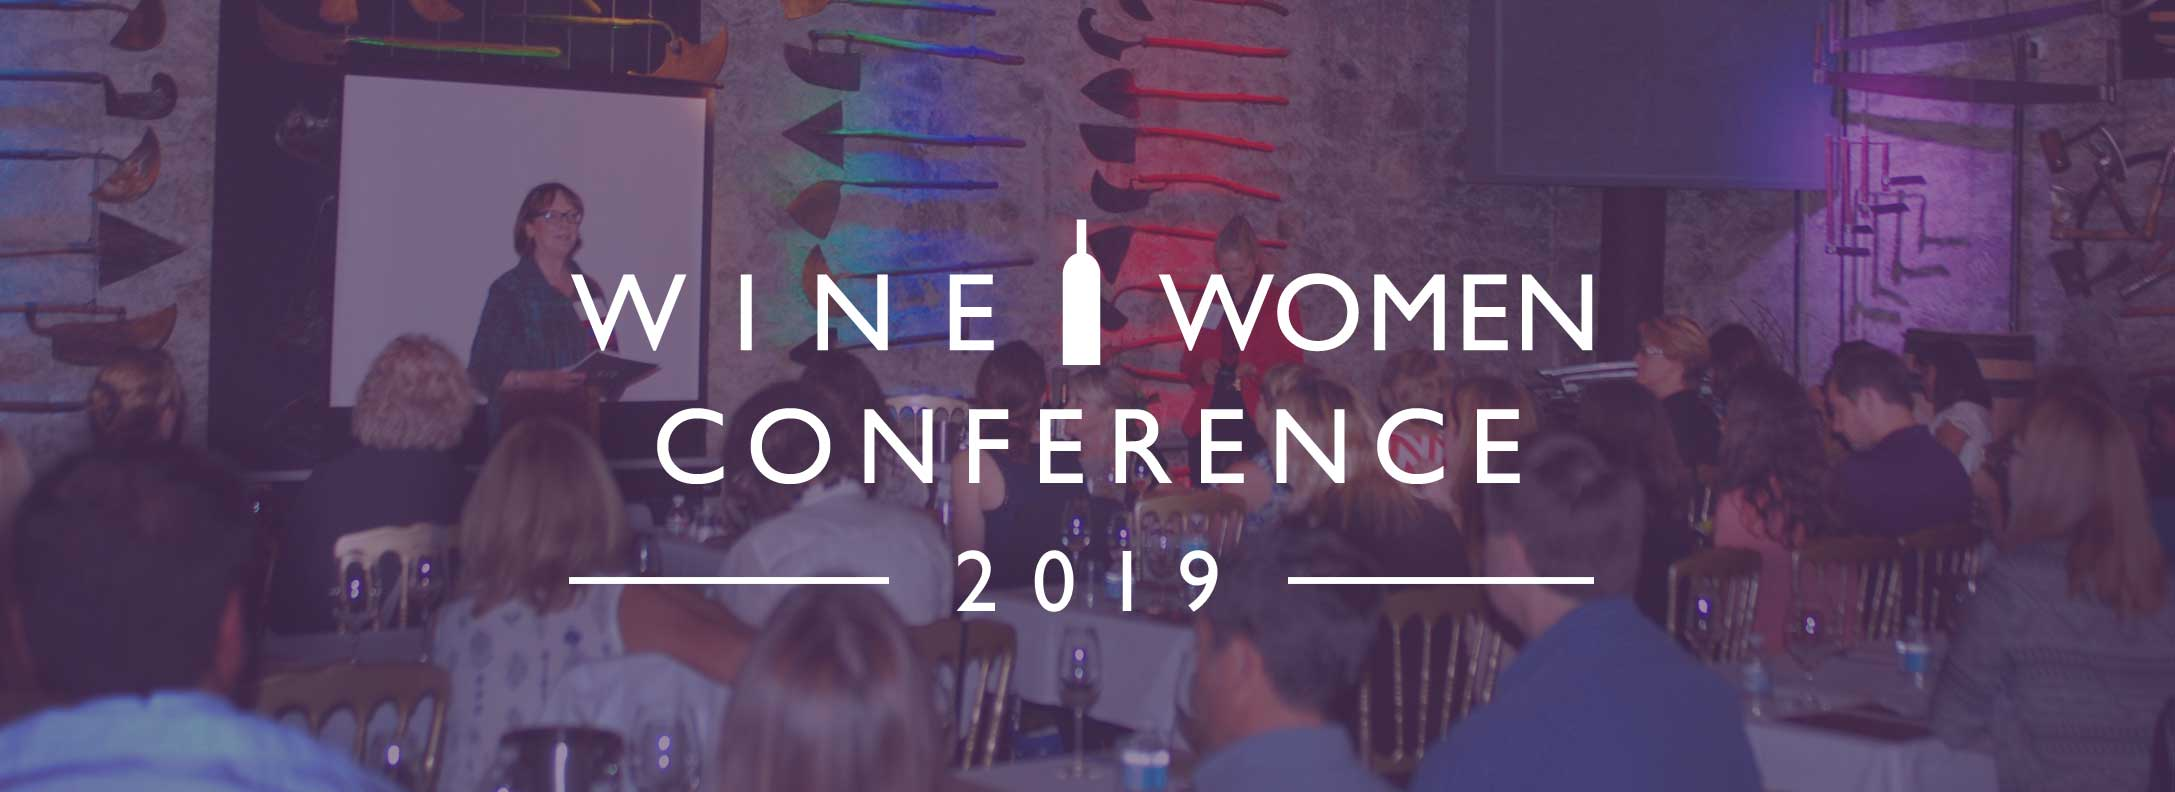 WINE WOMEN CONFERENCE 2019